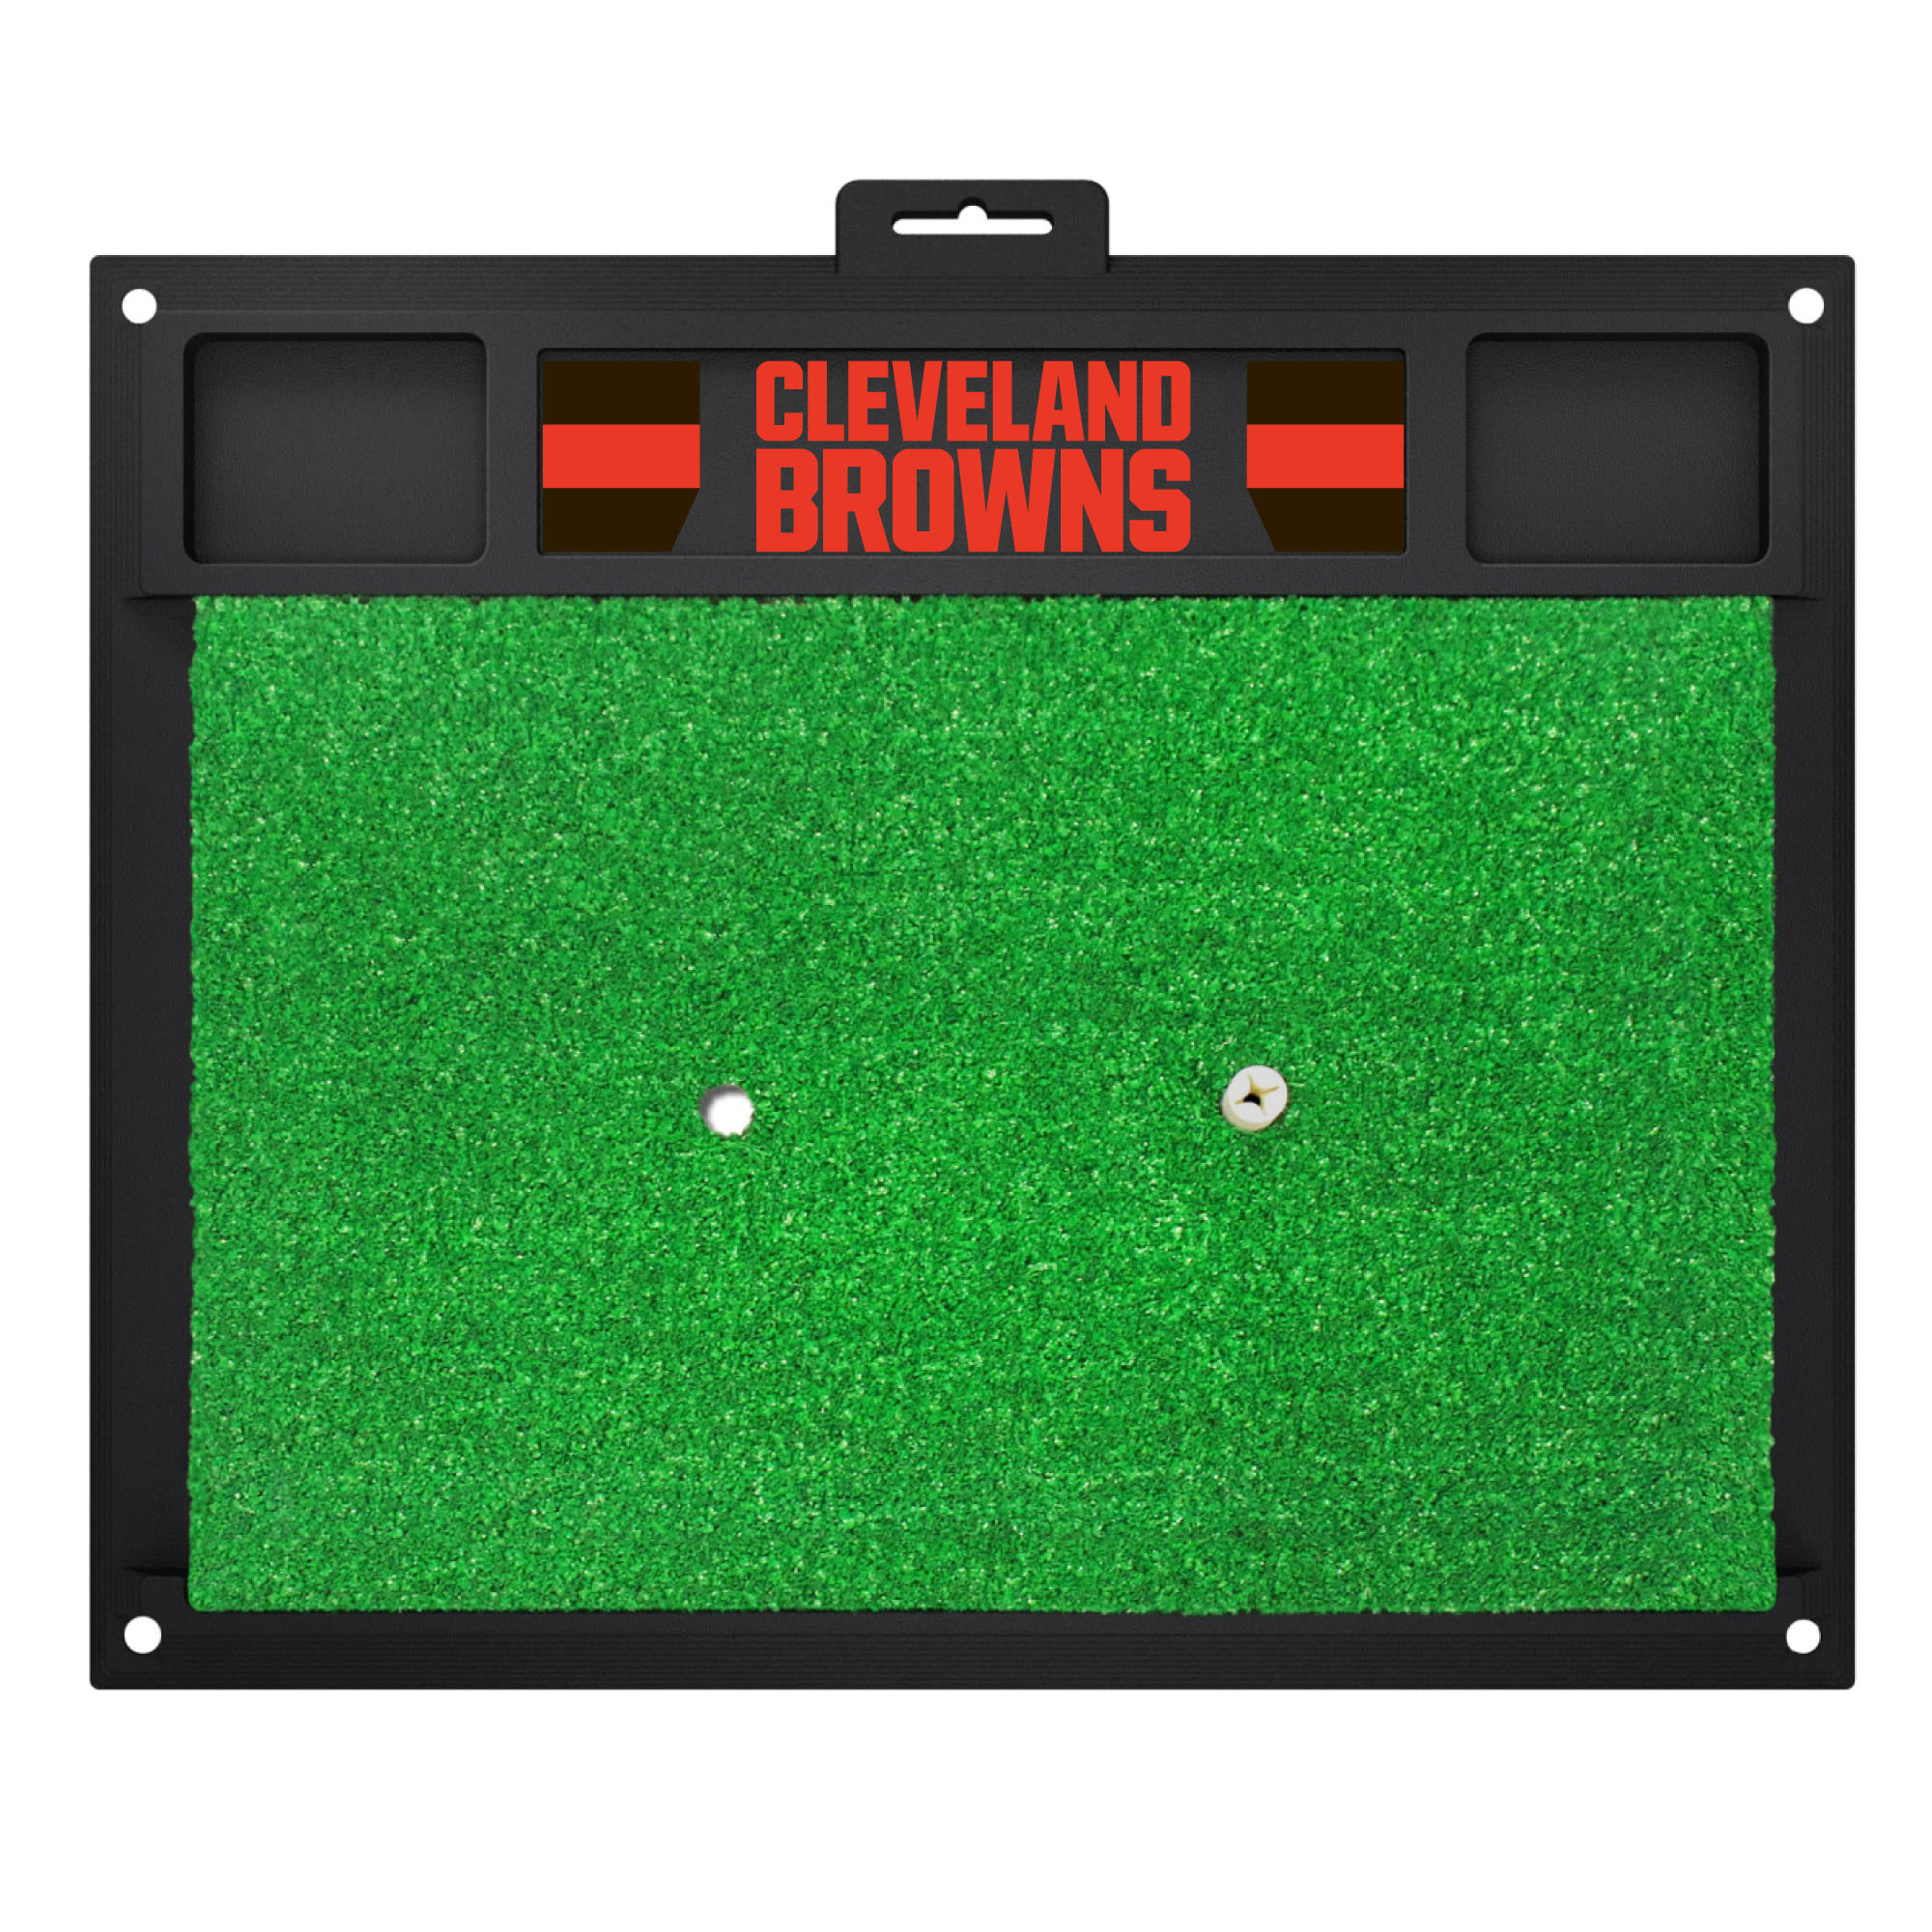 NFL Cleveland Browns Golf Hitting Mat Golf Practice Accessory